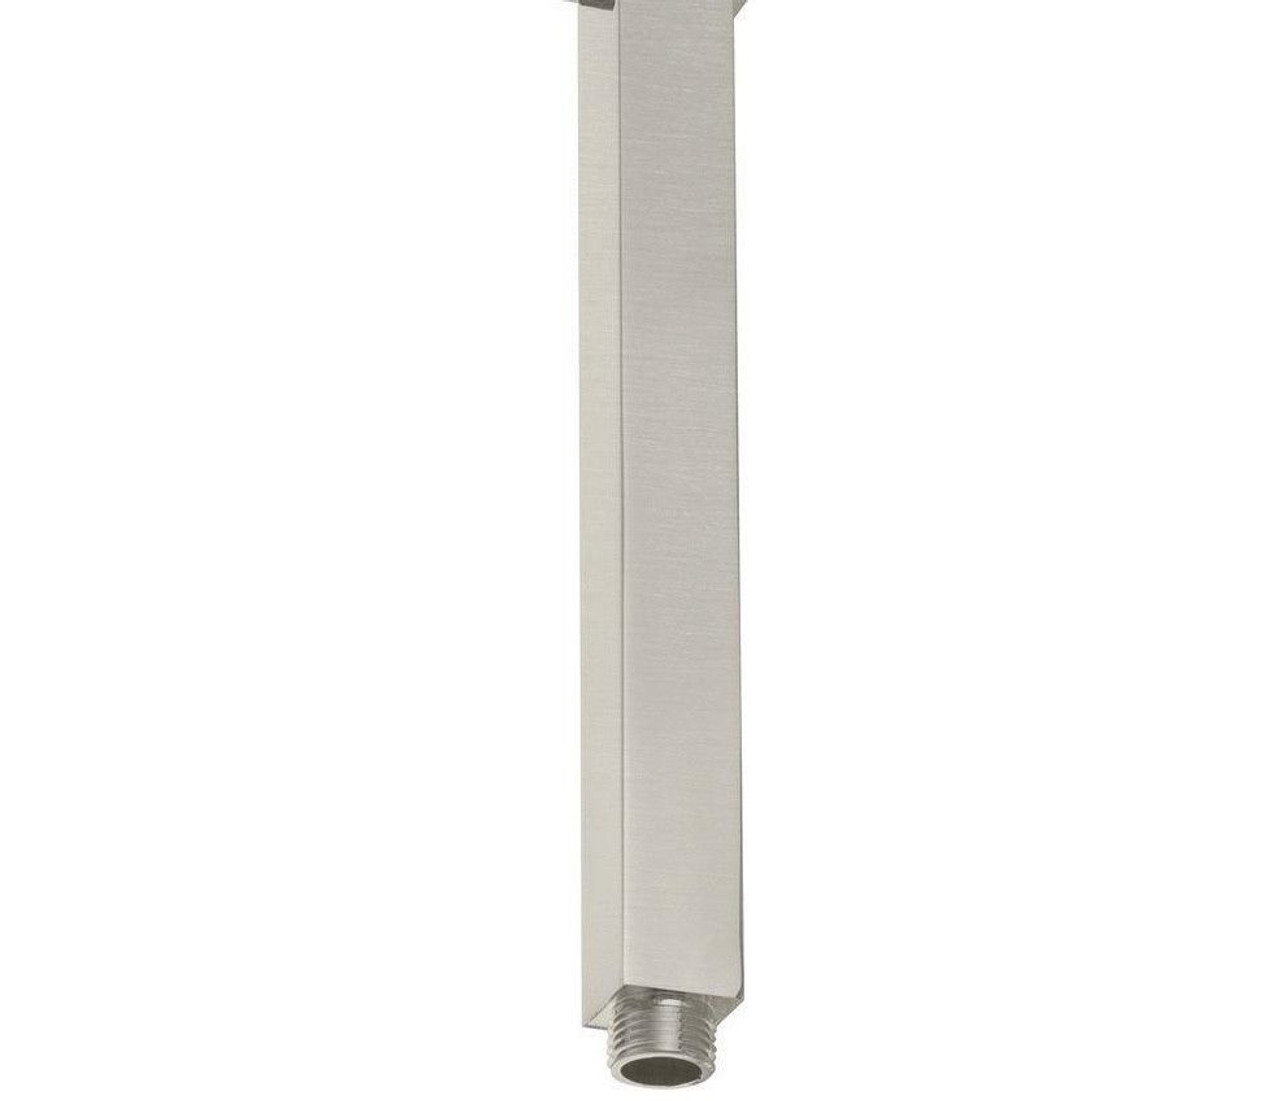 Royal Square Ceiling Mounted Shower Arm For Rain Shower Heads 8 Inch Brushed Nickel